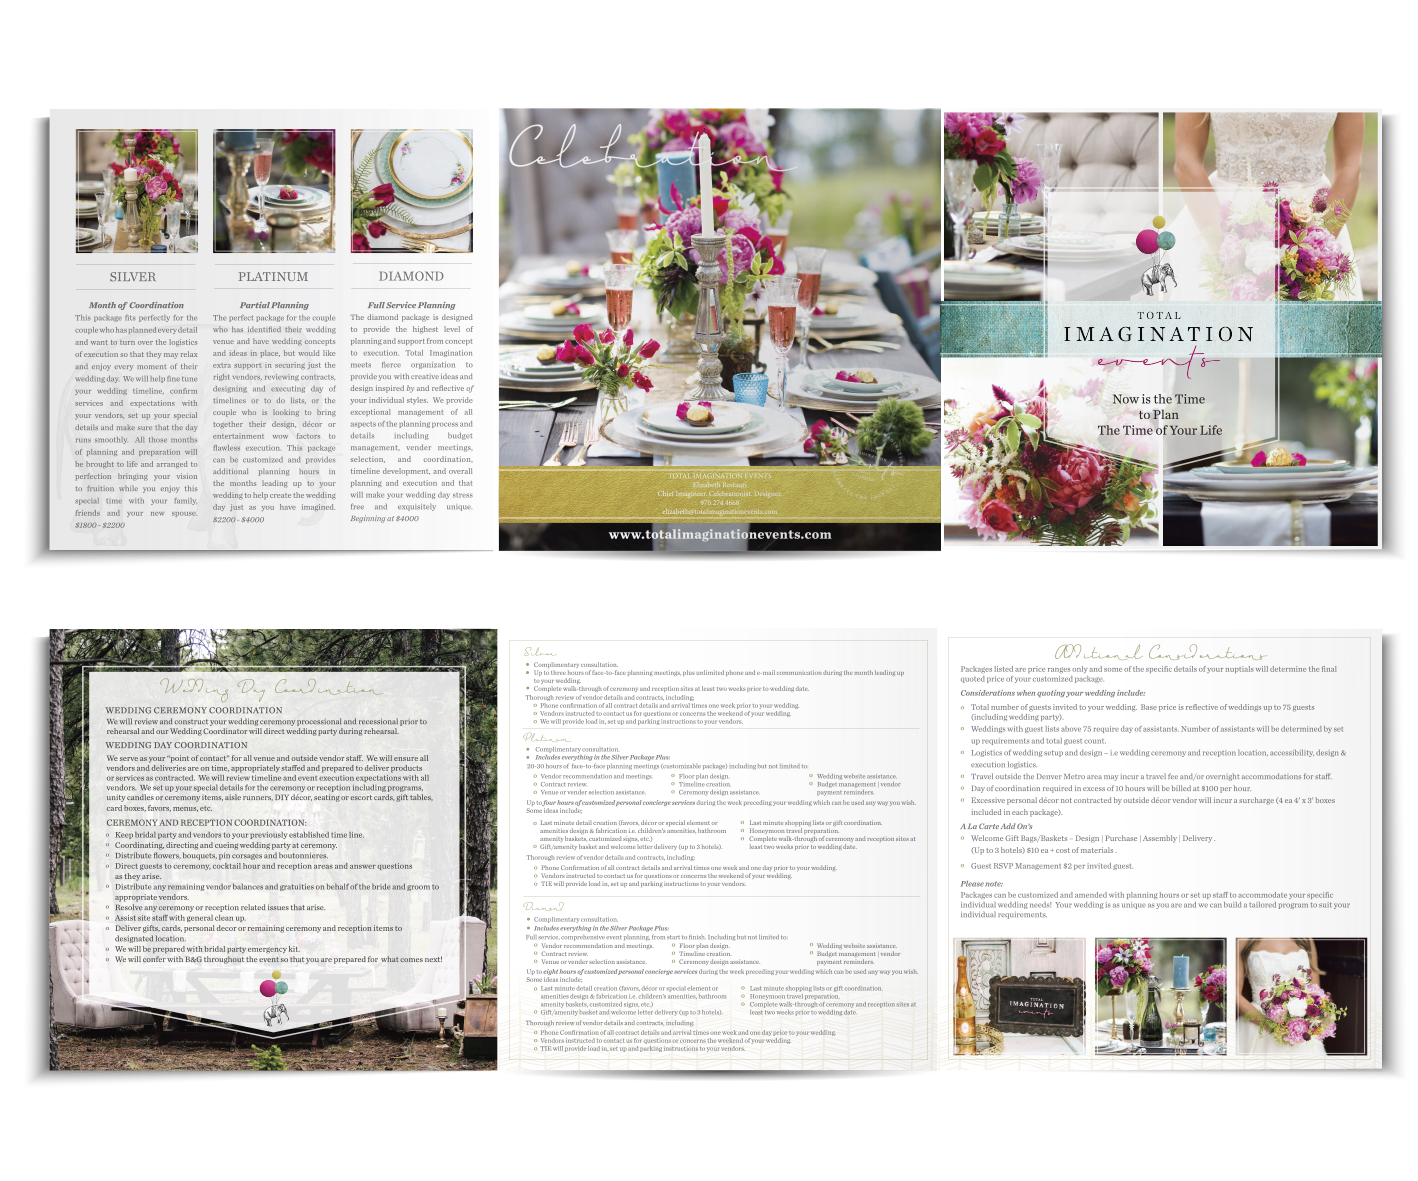 Wedding design branding and Wedding brochure design by graphic designer Billie Hardy Creative